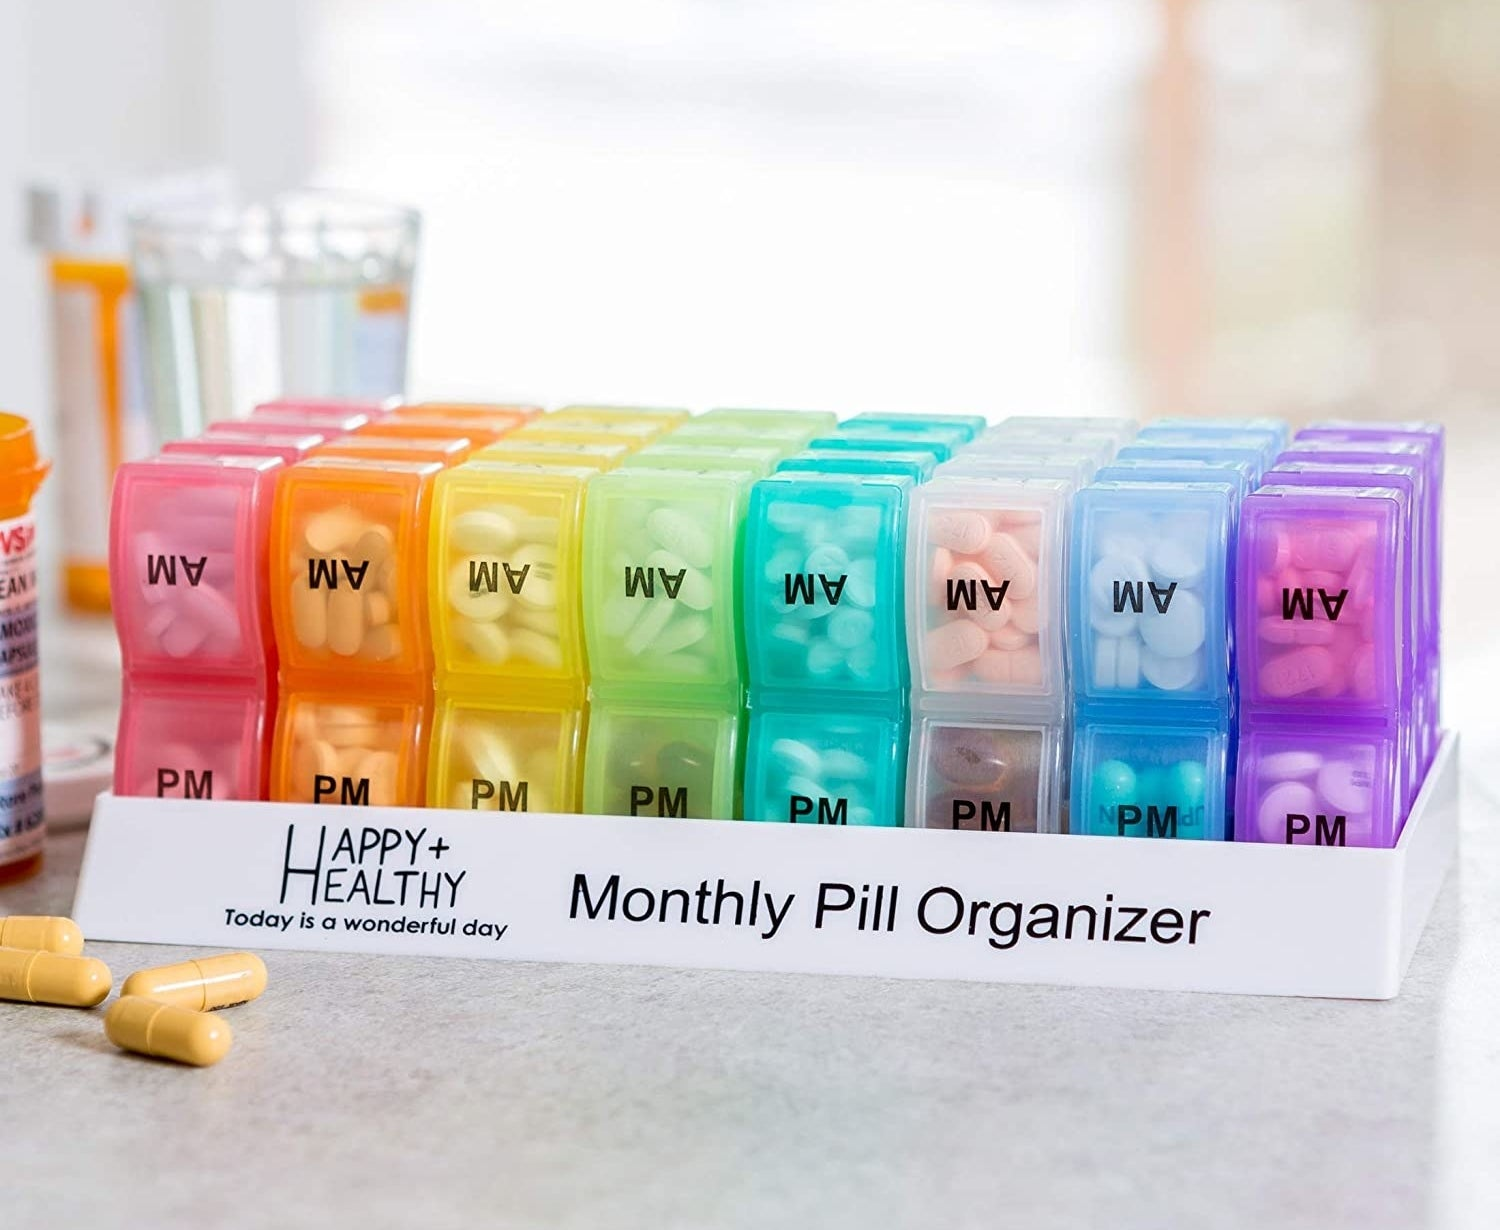 The monthly pill organizer filled with capsules